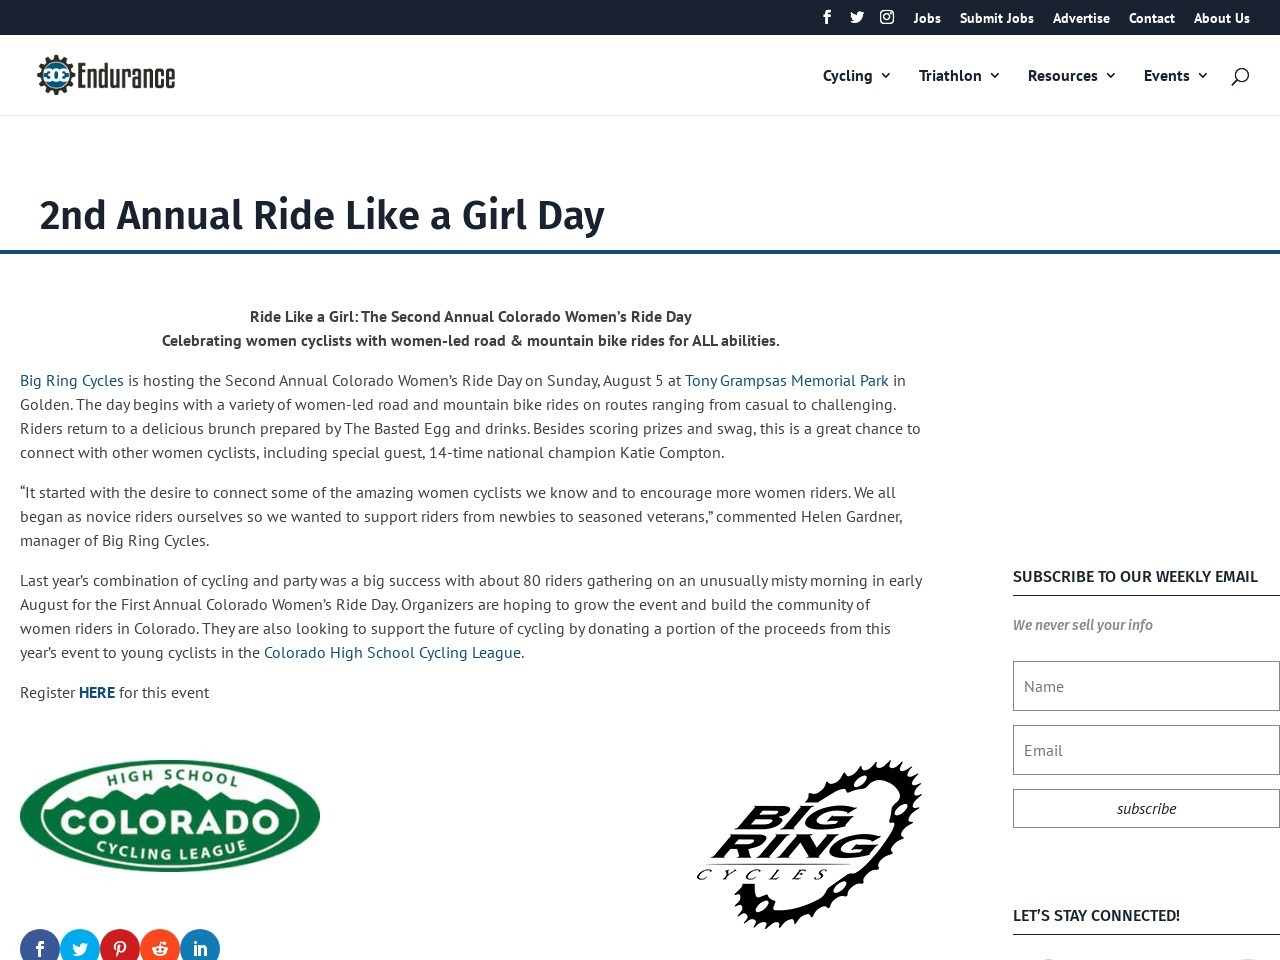 2nd Annual Ride Like a Girl Day